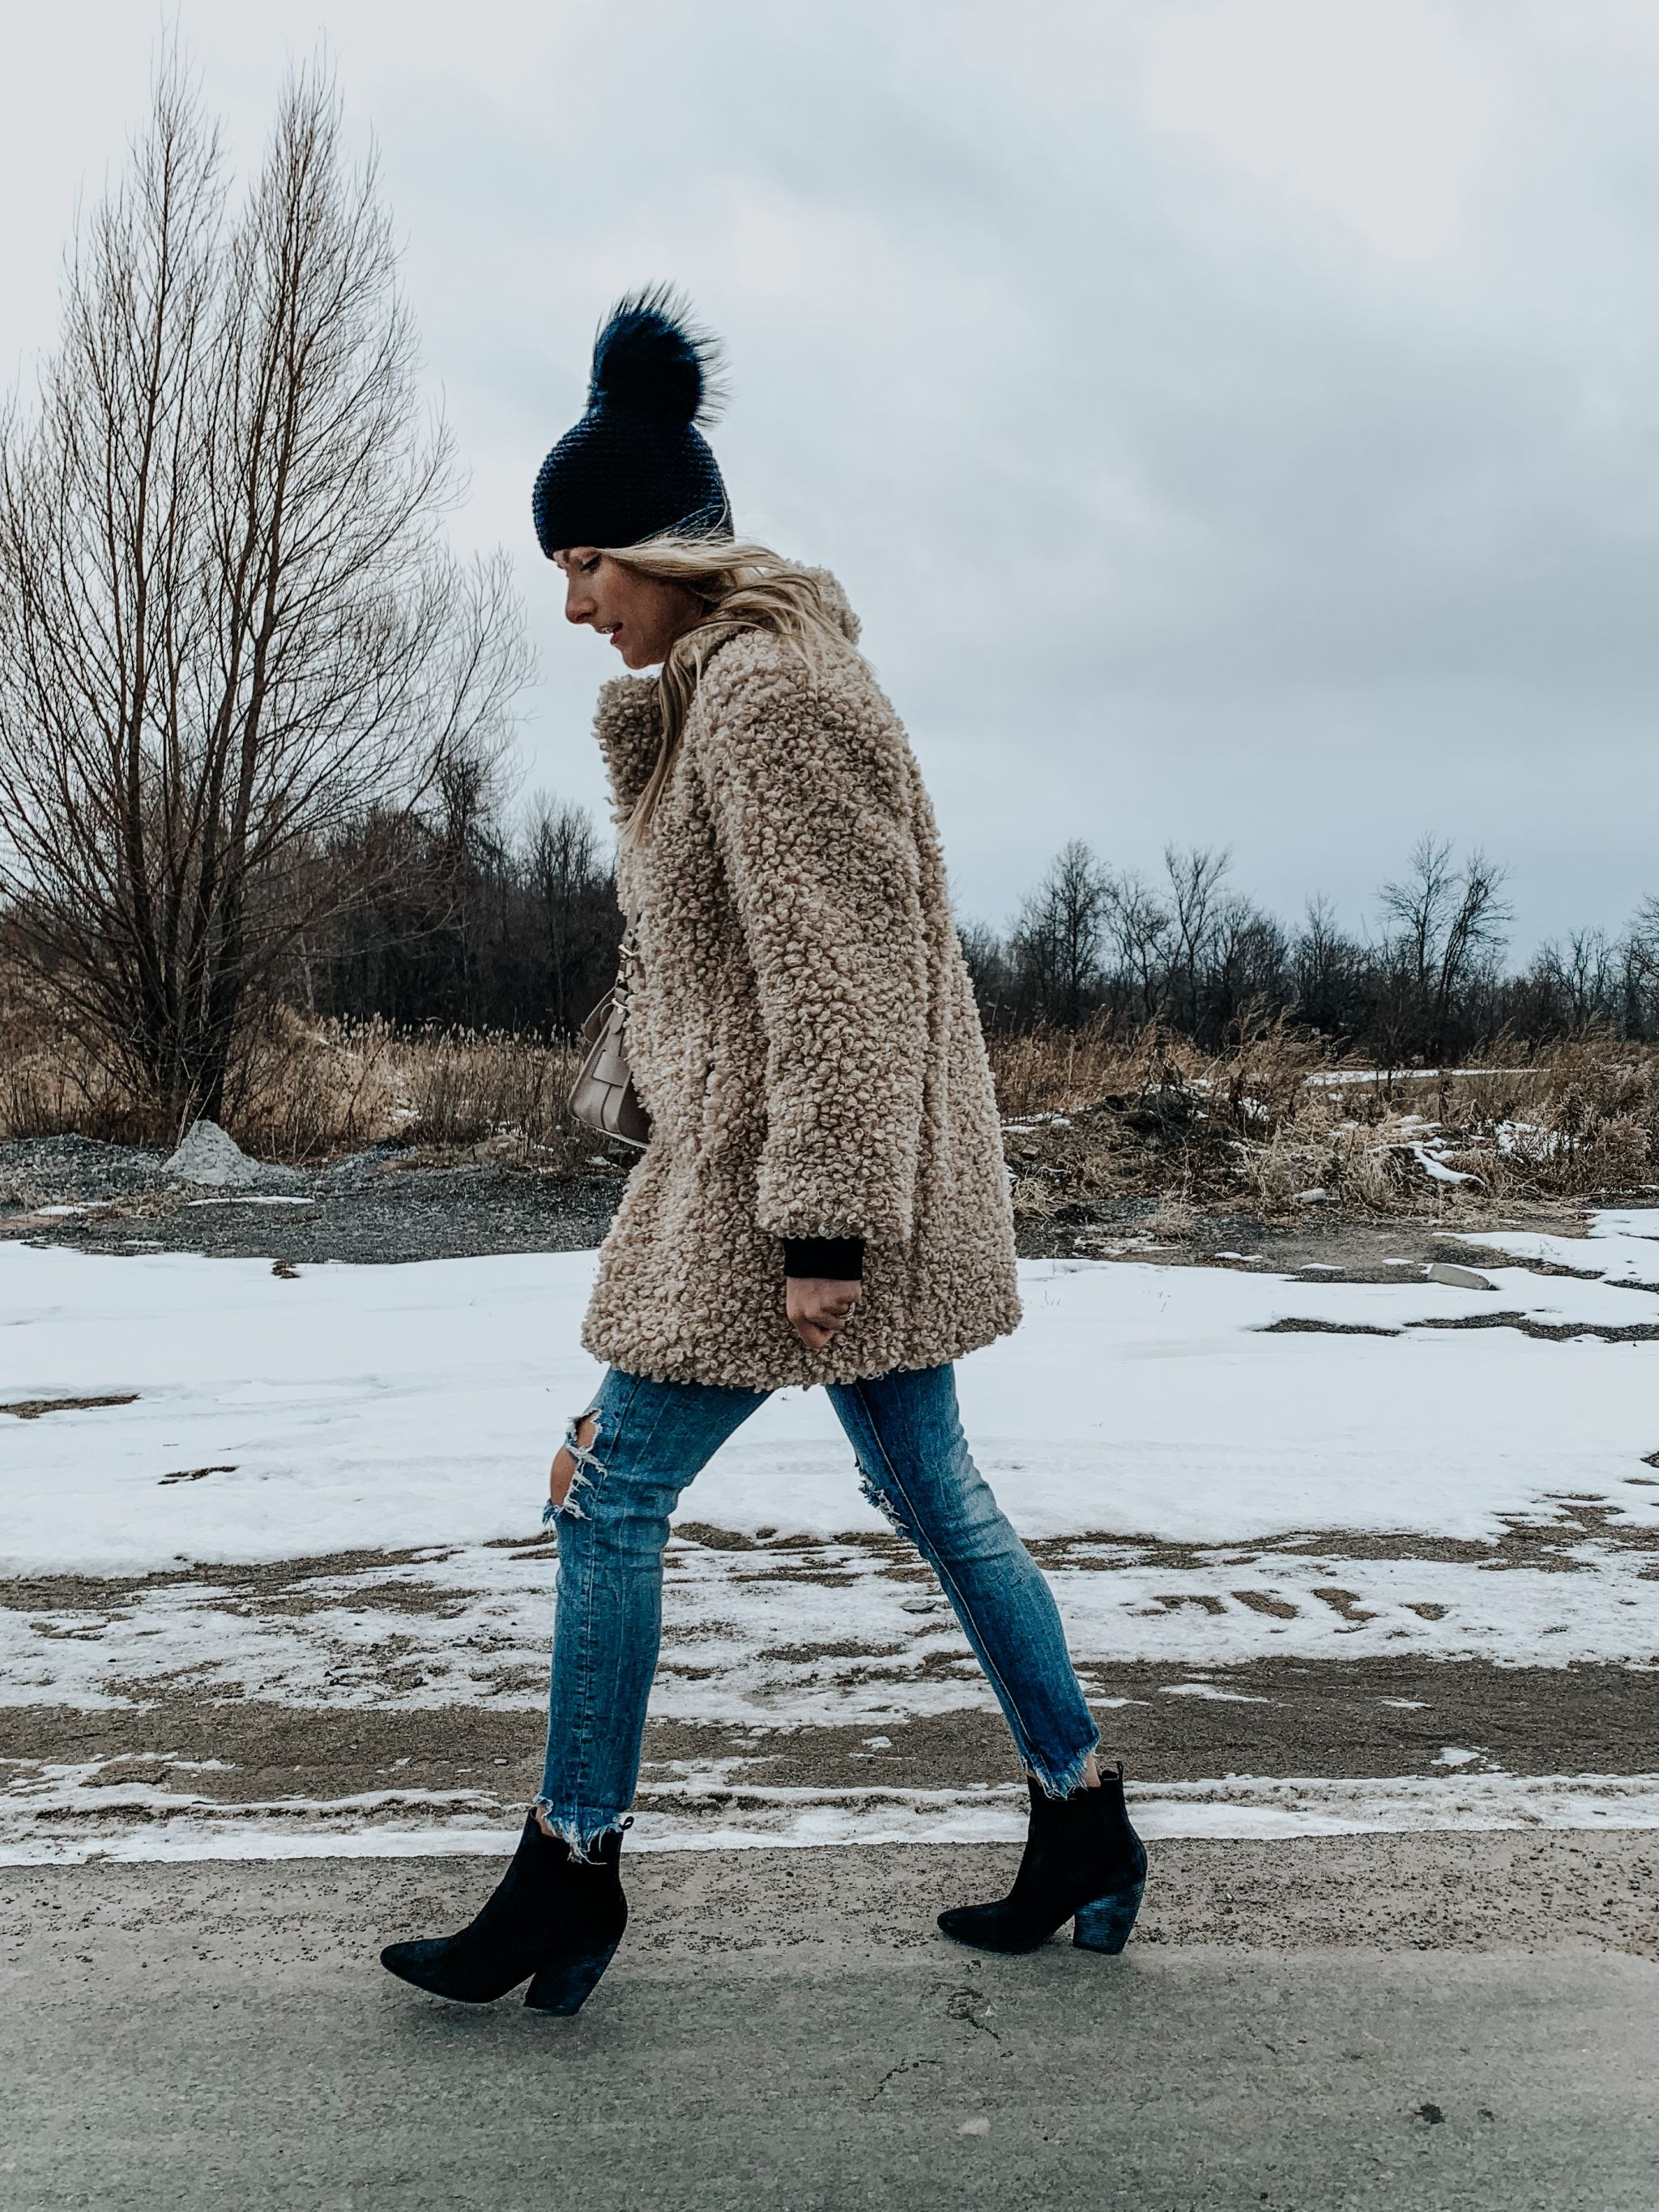 1 person, girl wearing stylish winter outfit